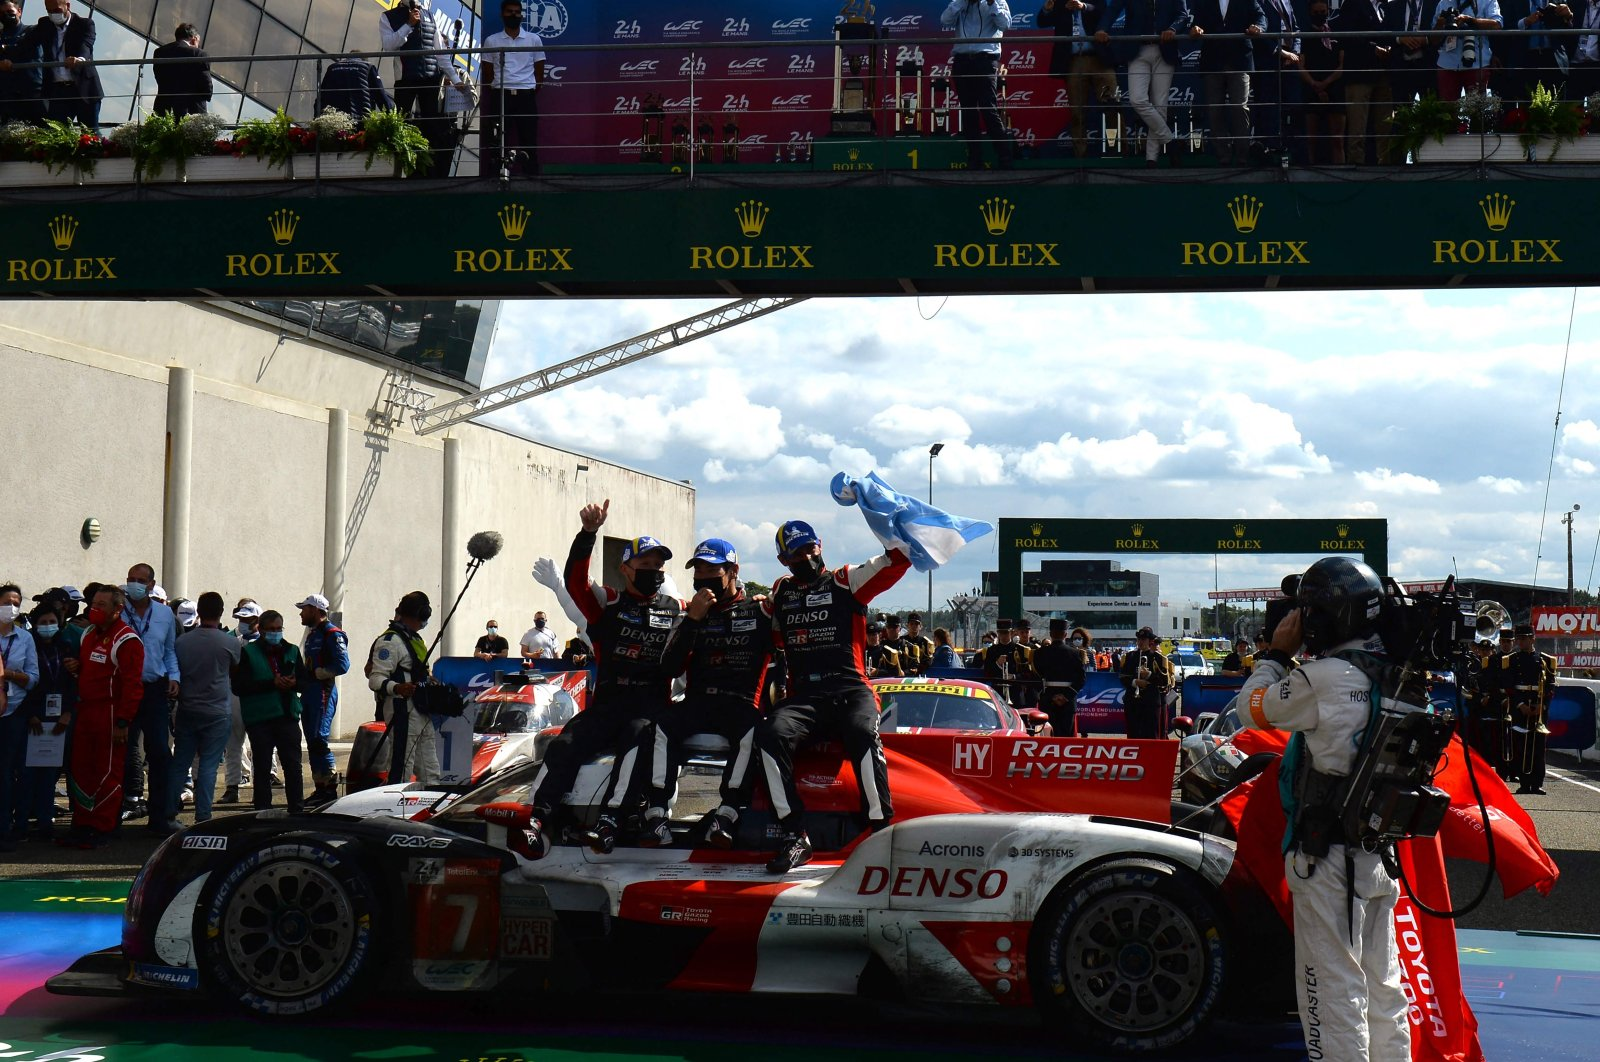 Toyota's British driver Mike Conway (L), Japanese driver Kamui Kobayashi (C) and Argentine driver Jose Maria Lopez celebrate after winning the 89th edition of the Le Mans 24 Hours endurance race, in Le Mans, northwestern France, Aug. 22, 2021. (AFP Photo)